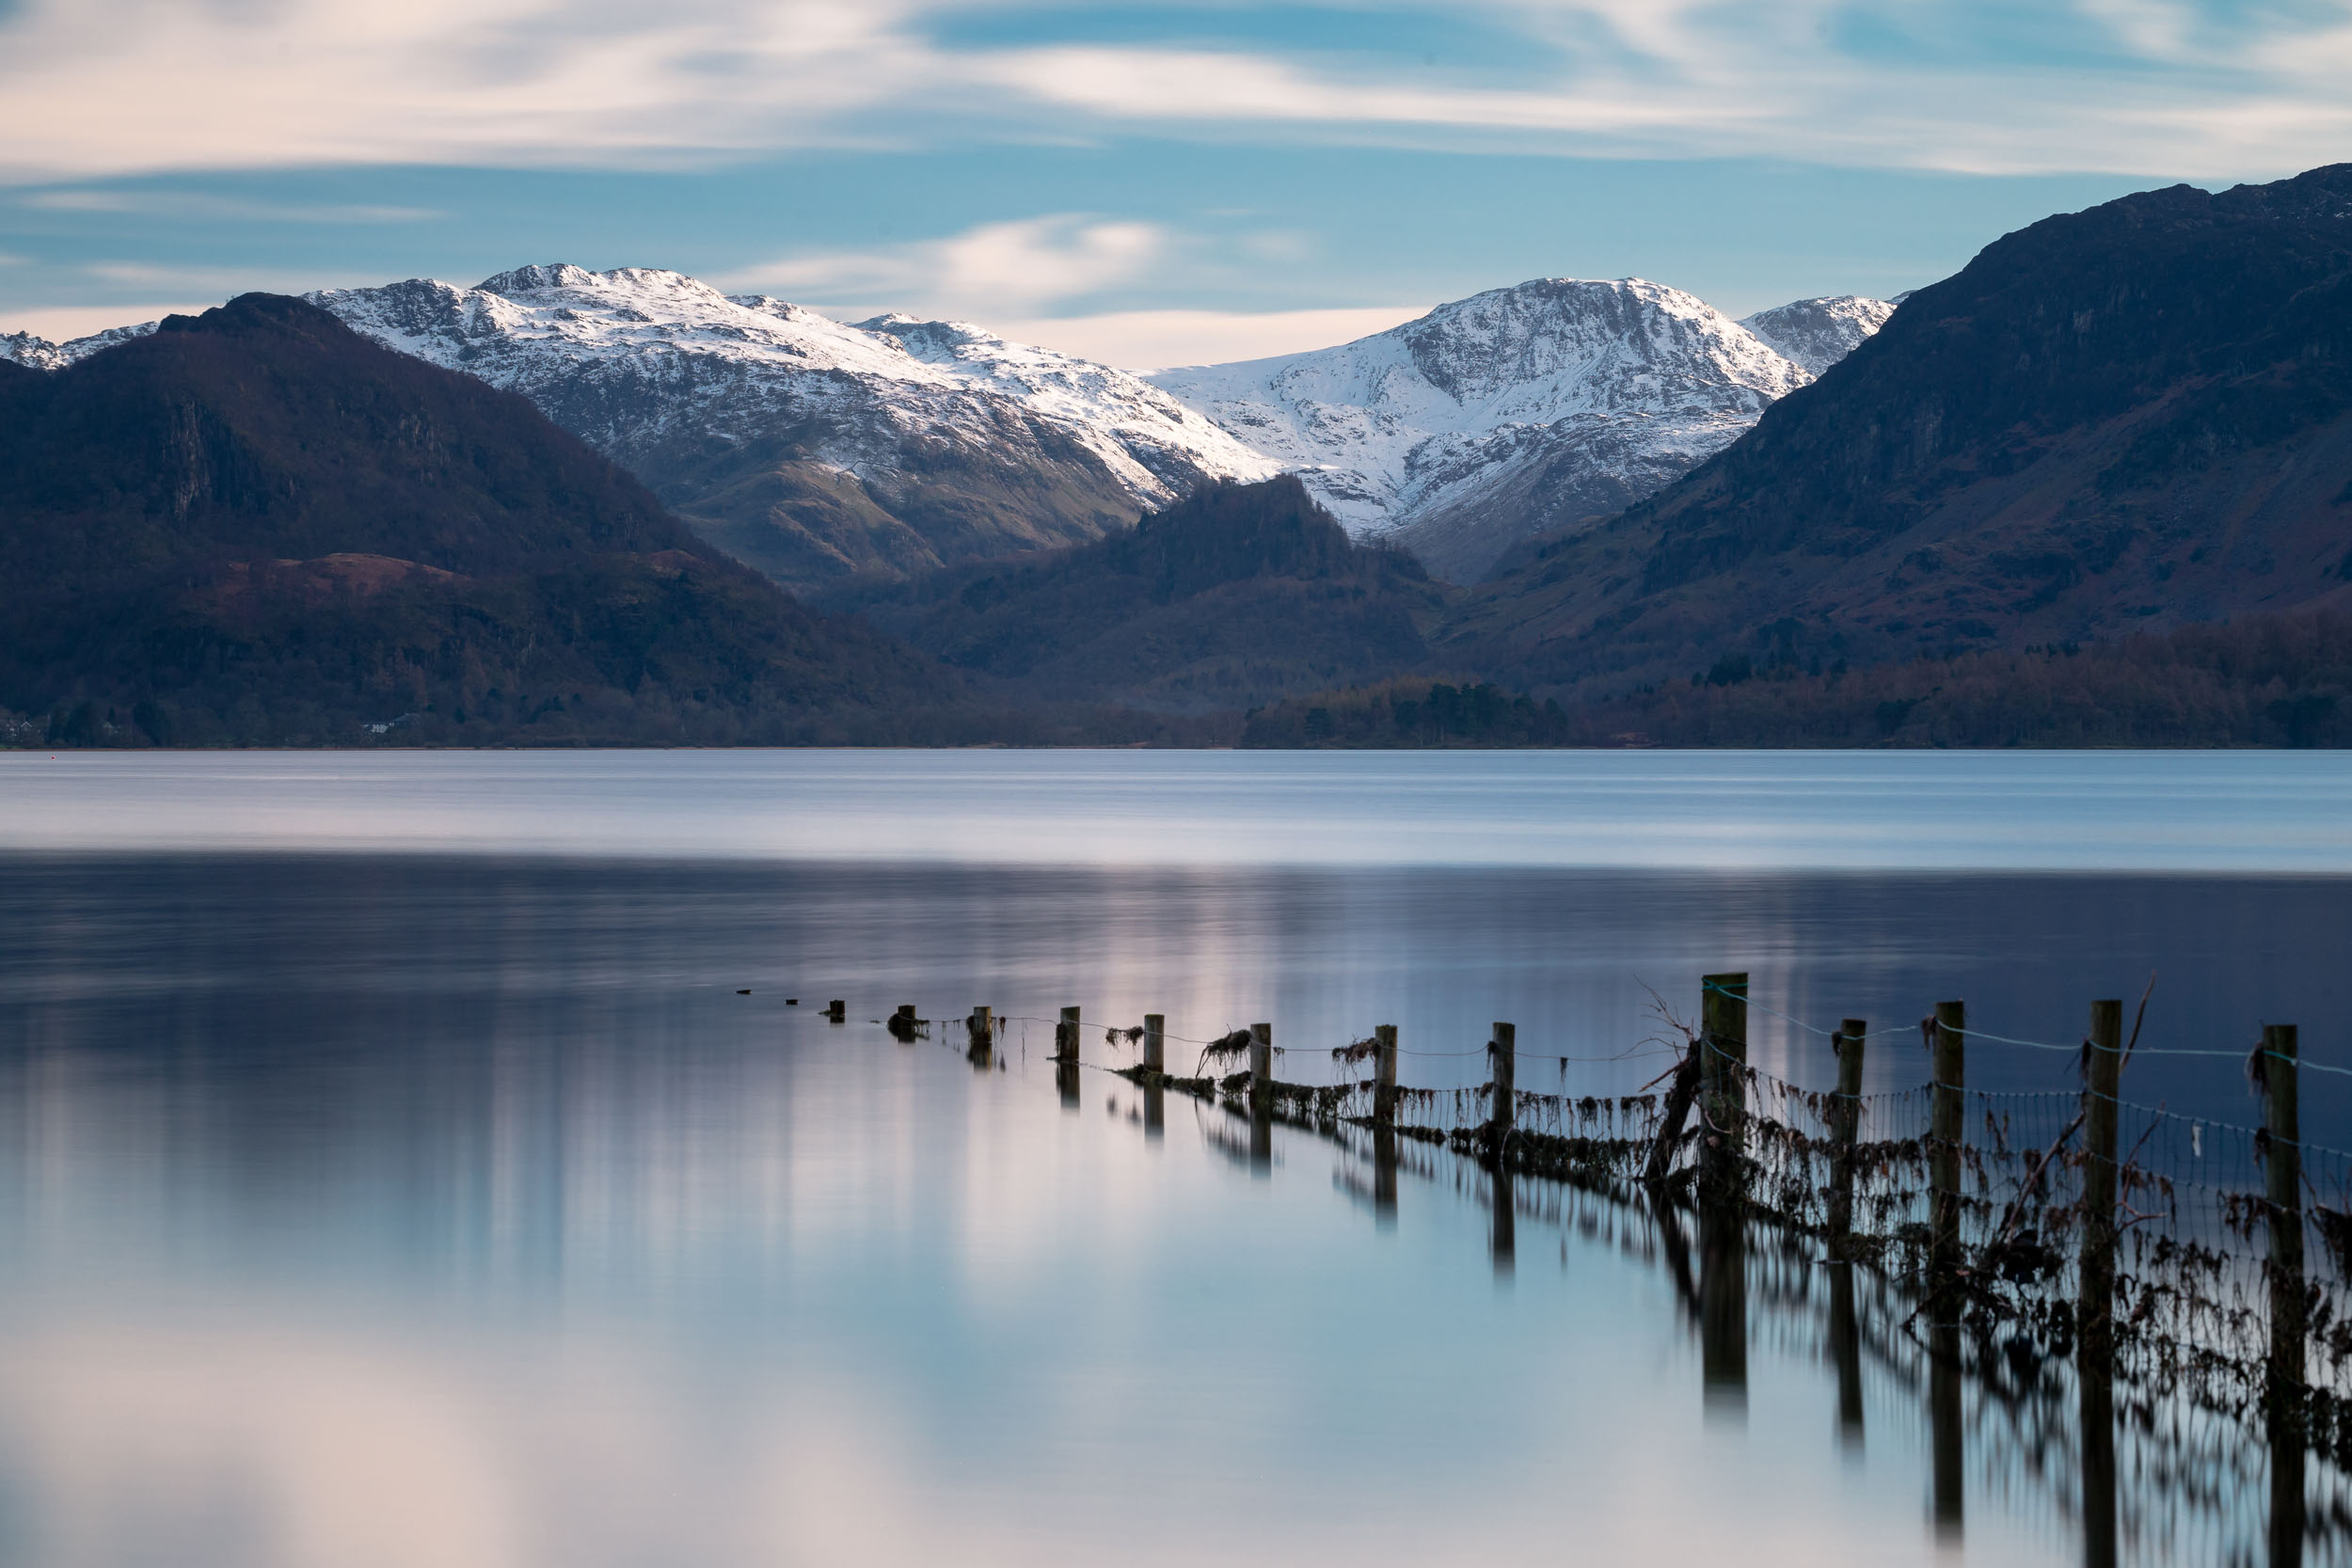 lake district keswick derwentwater sunset long exposure snow capped great end glaramara mountains landscape.jpg